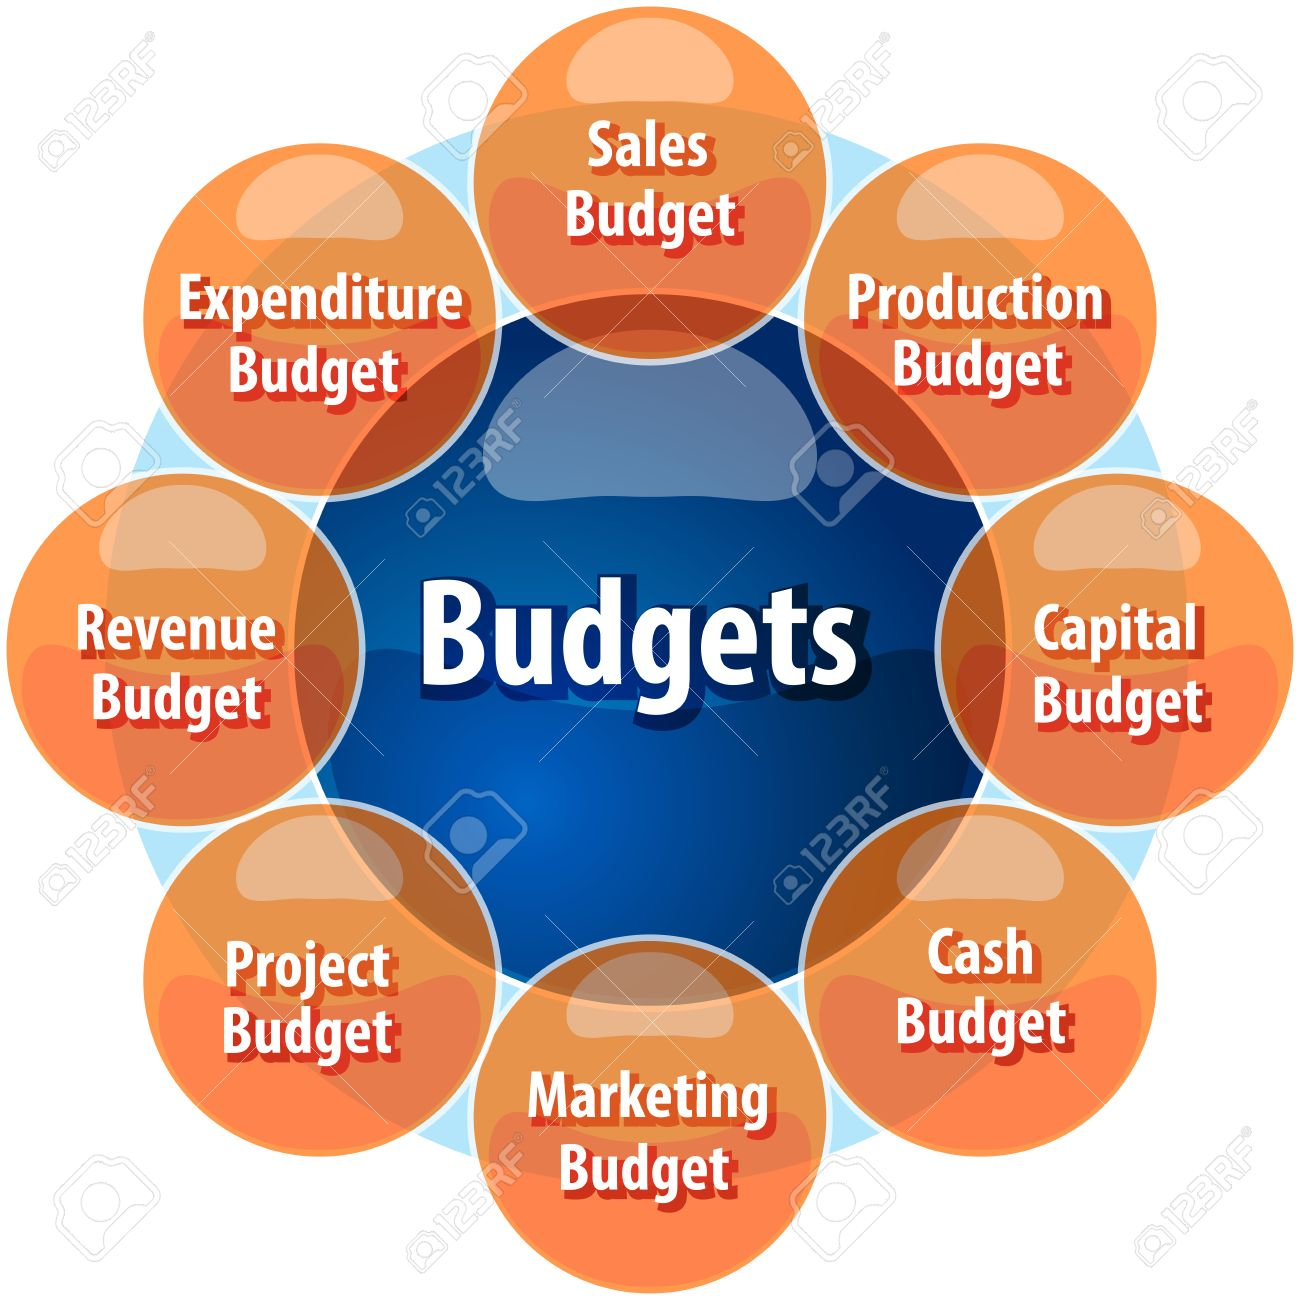 business strategy concept infographic diagram illustration of types of company budgets - 39756856